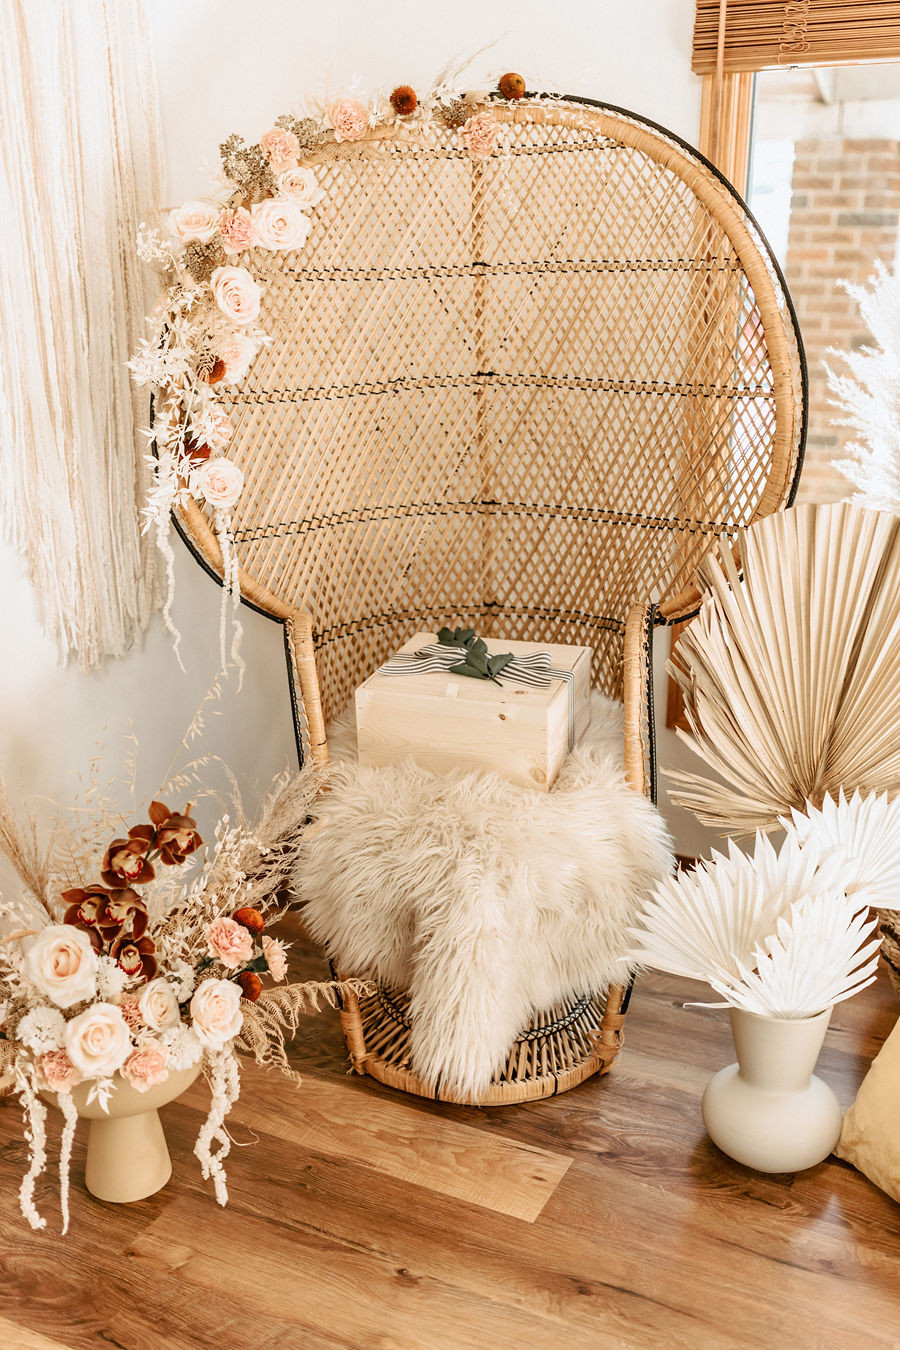 A beautiful custom baby shower gift keepsake box for a baby sits on a rattan wicker chair that is decorated with flowers and pampas grasses.